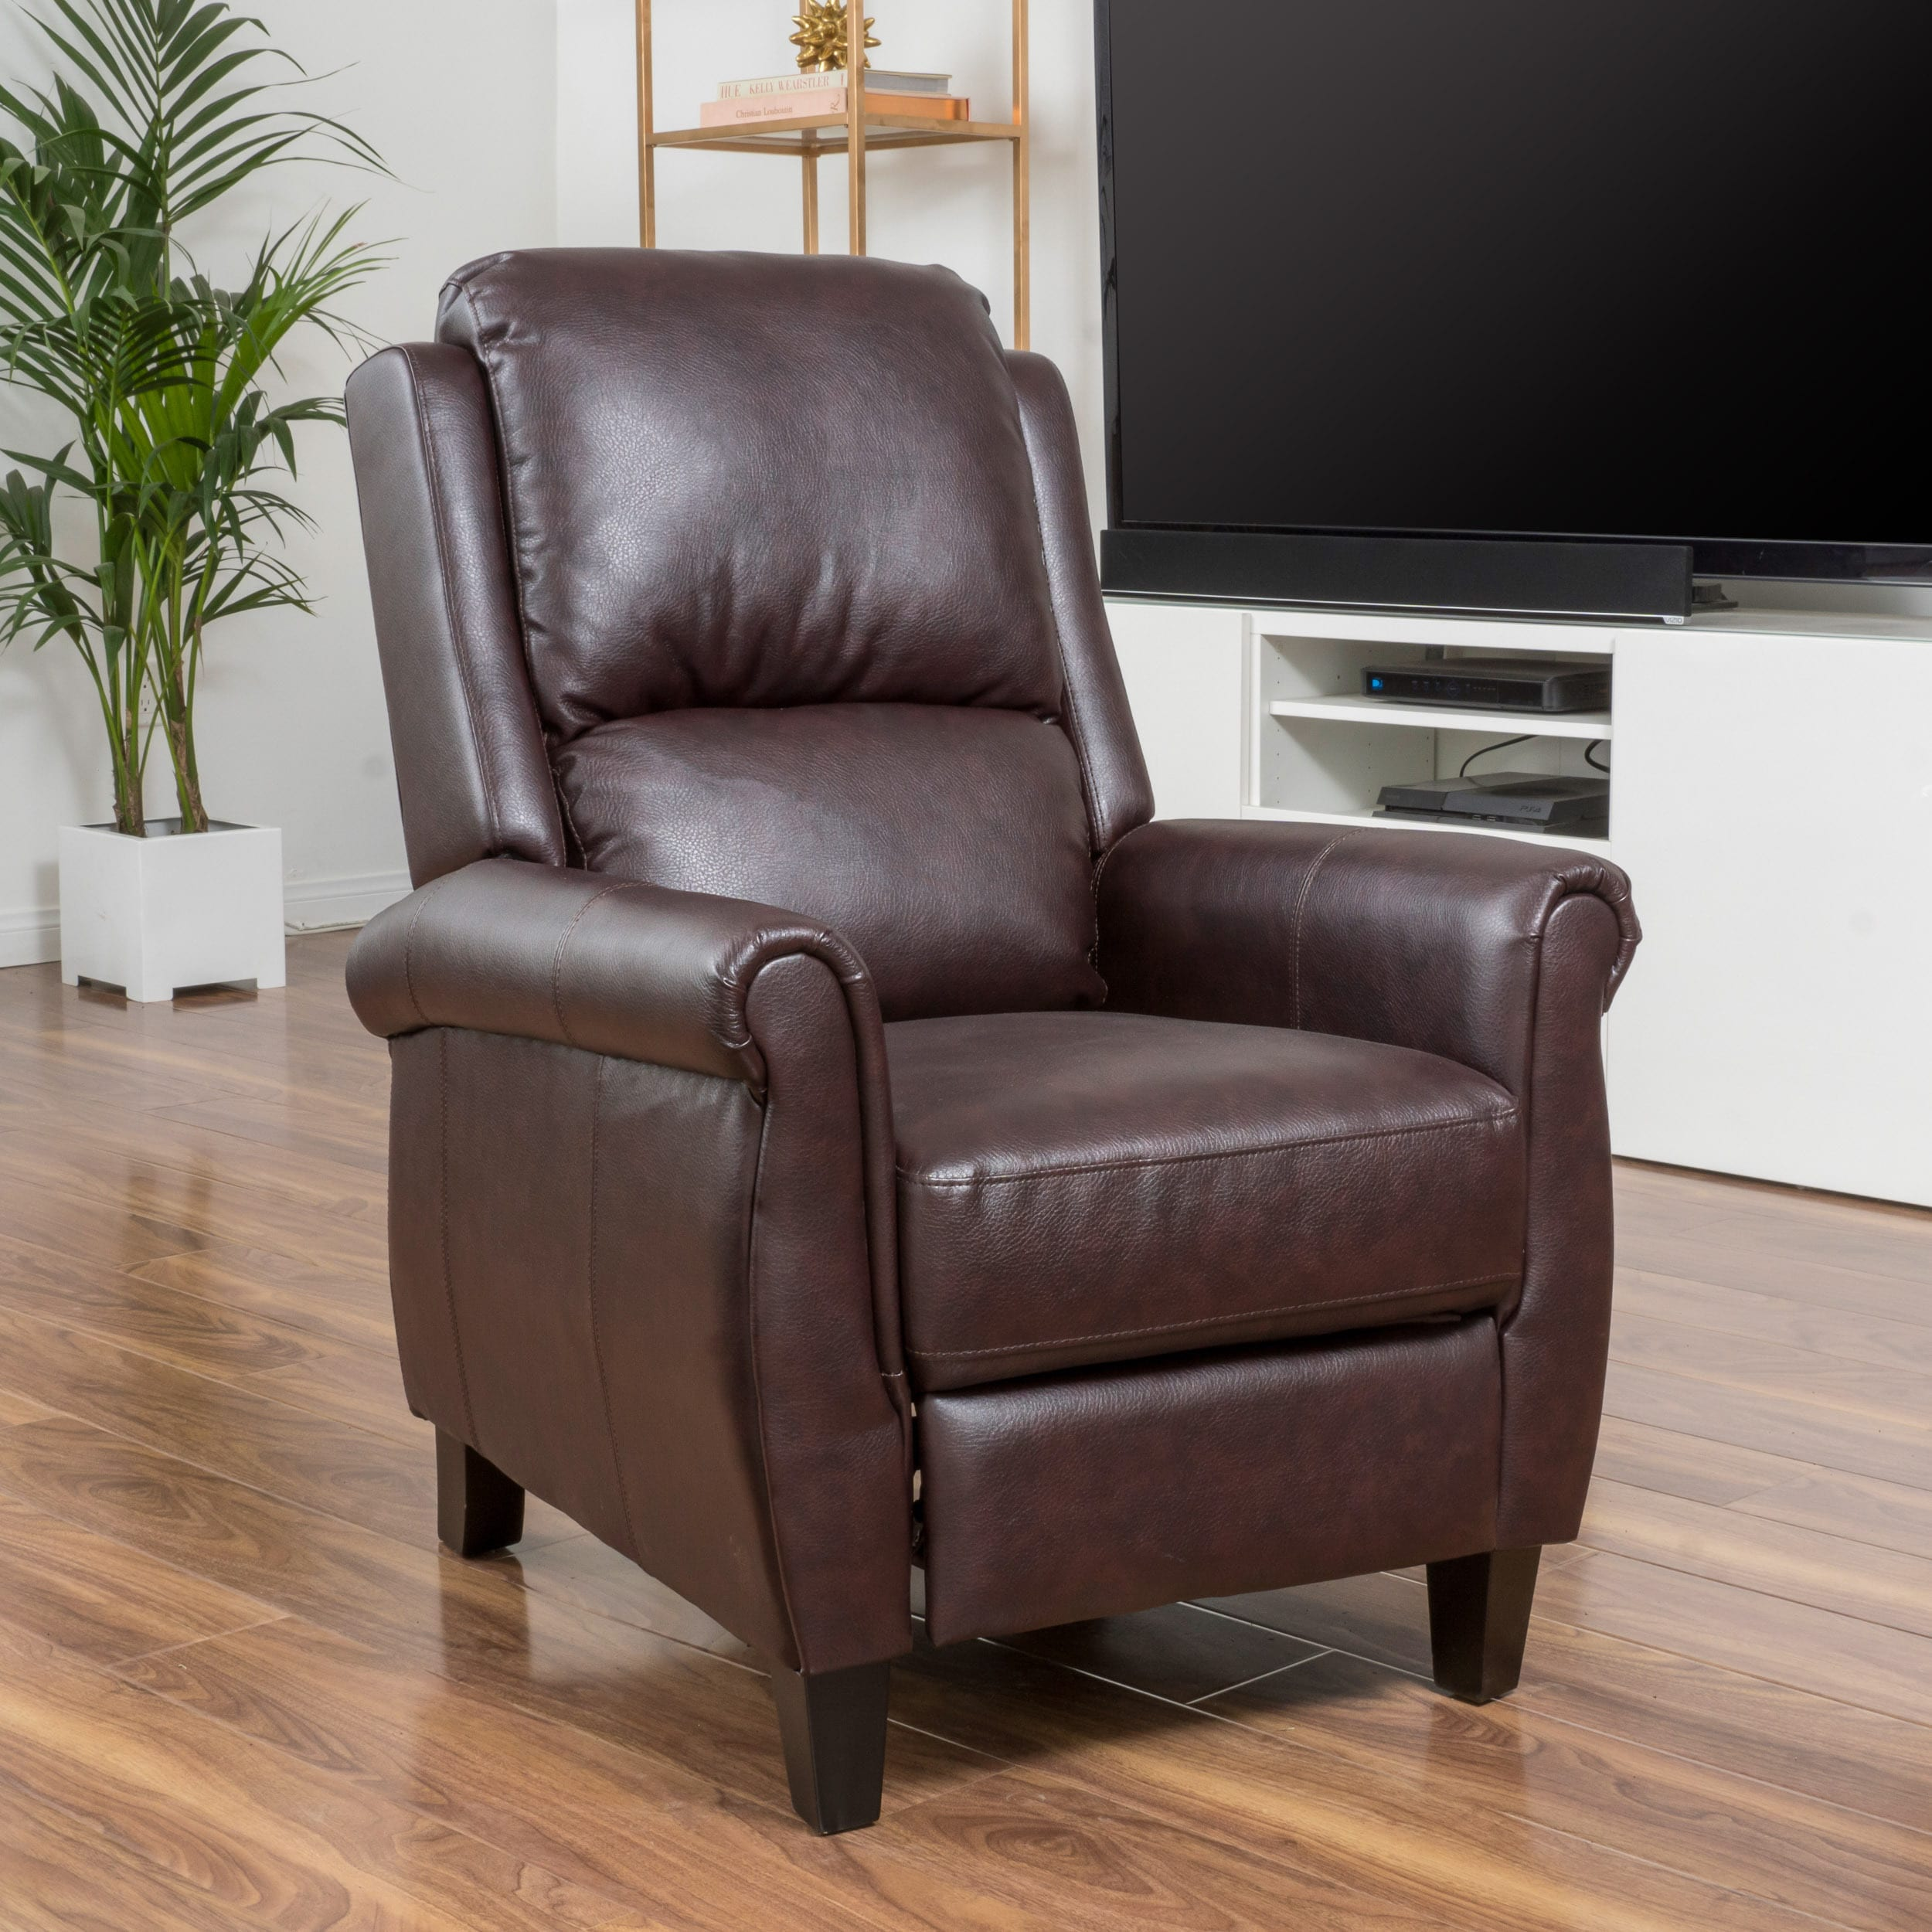 discount s magellan gallery power large recliners room and recliner bob reclining p living furniture leather